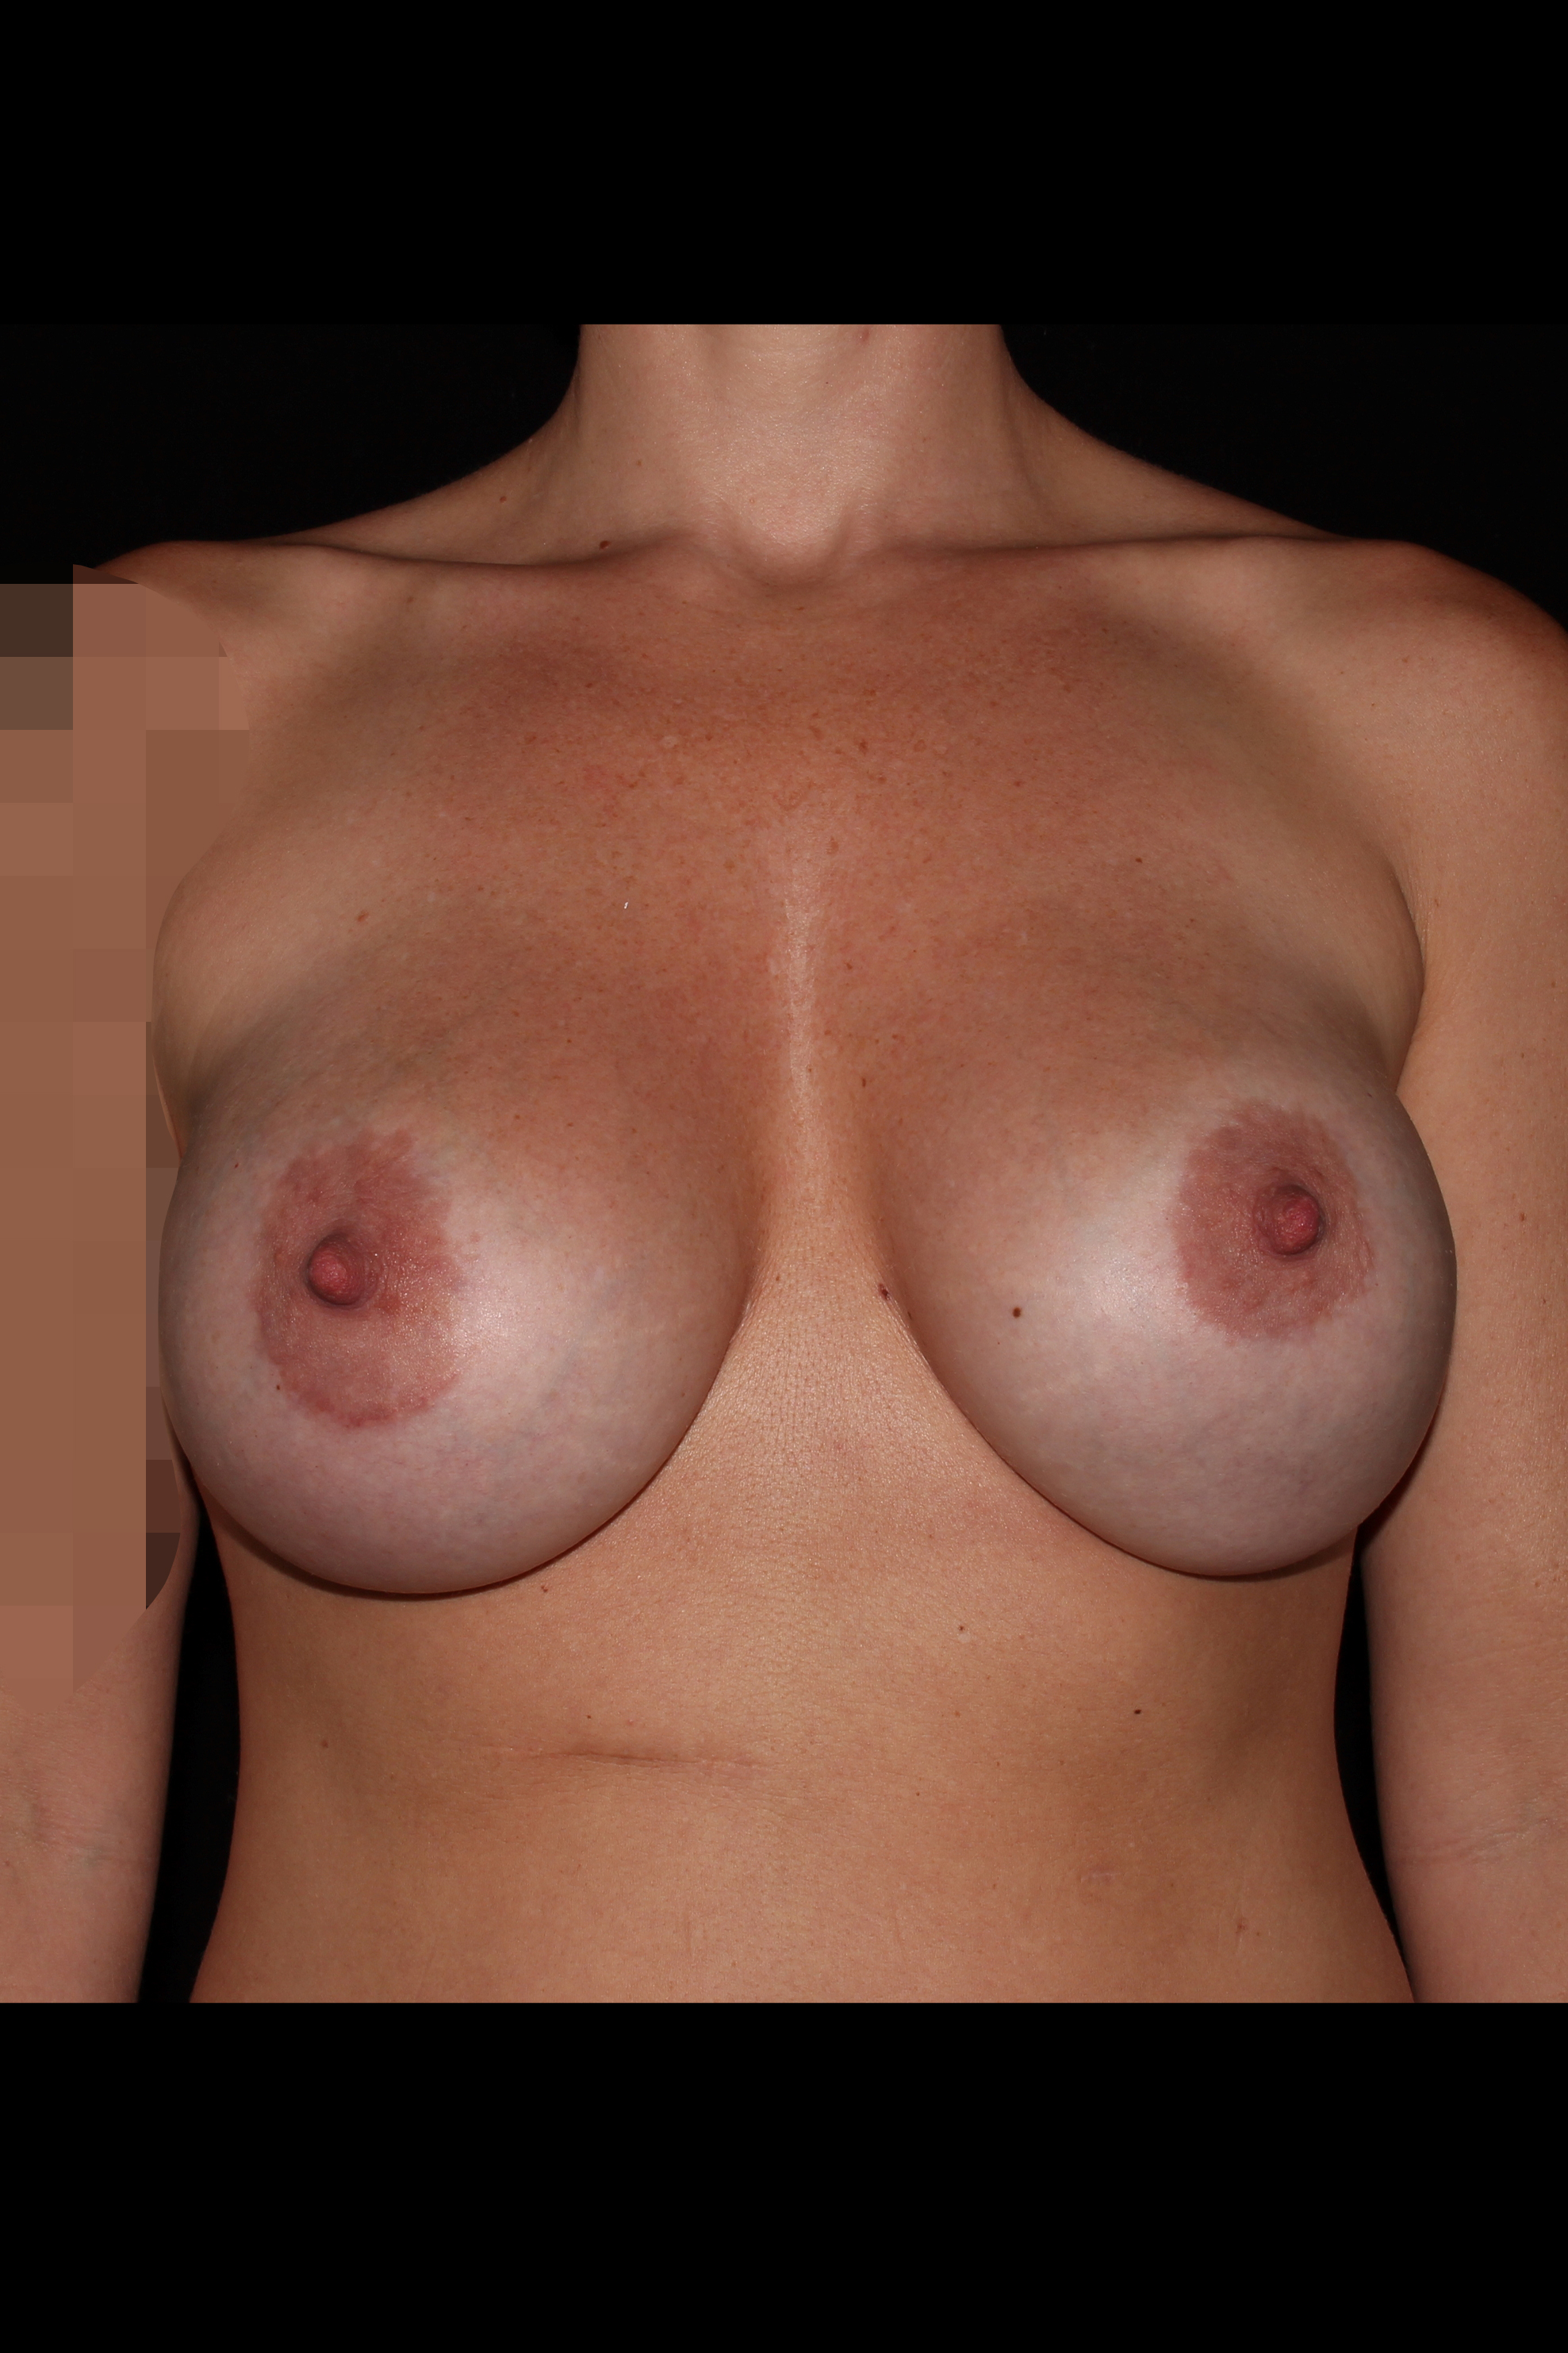 Before Breast Revision - Implant exchange & fat transfer